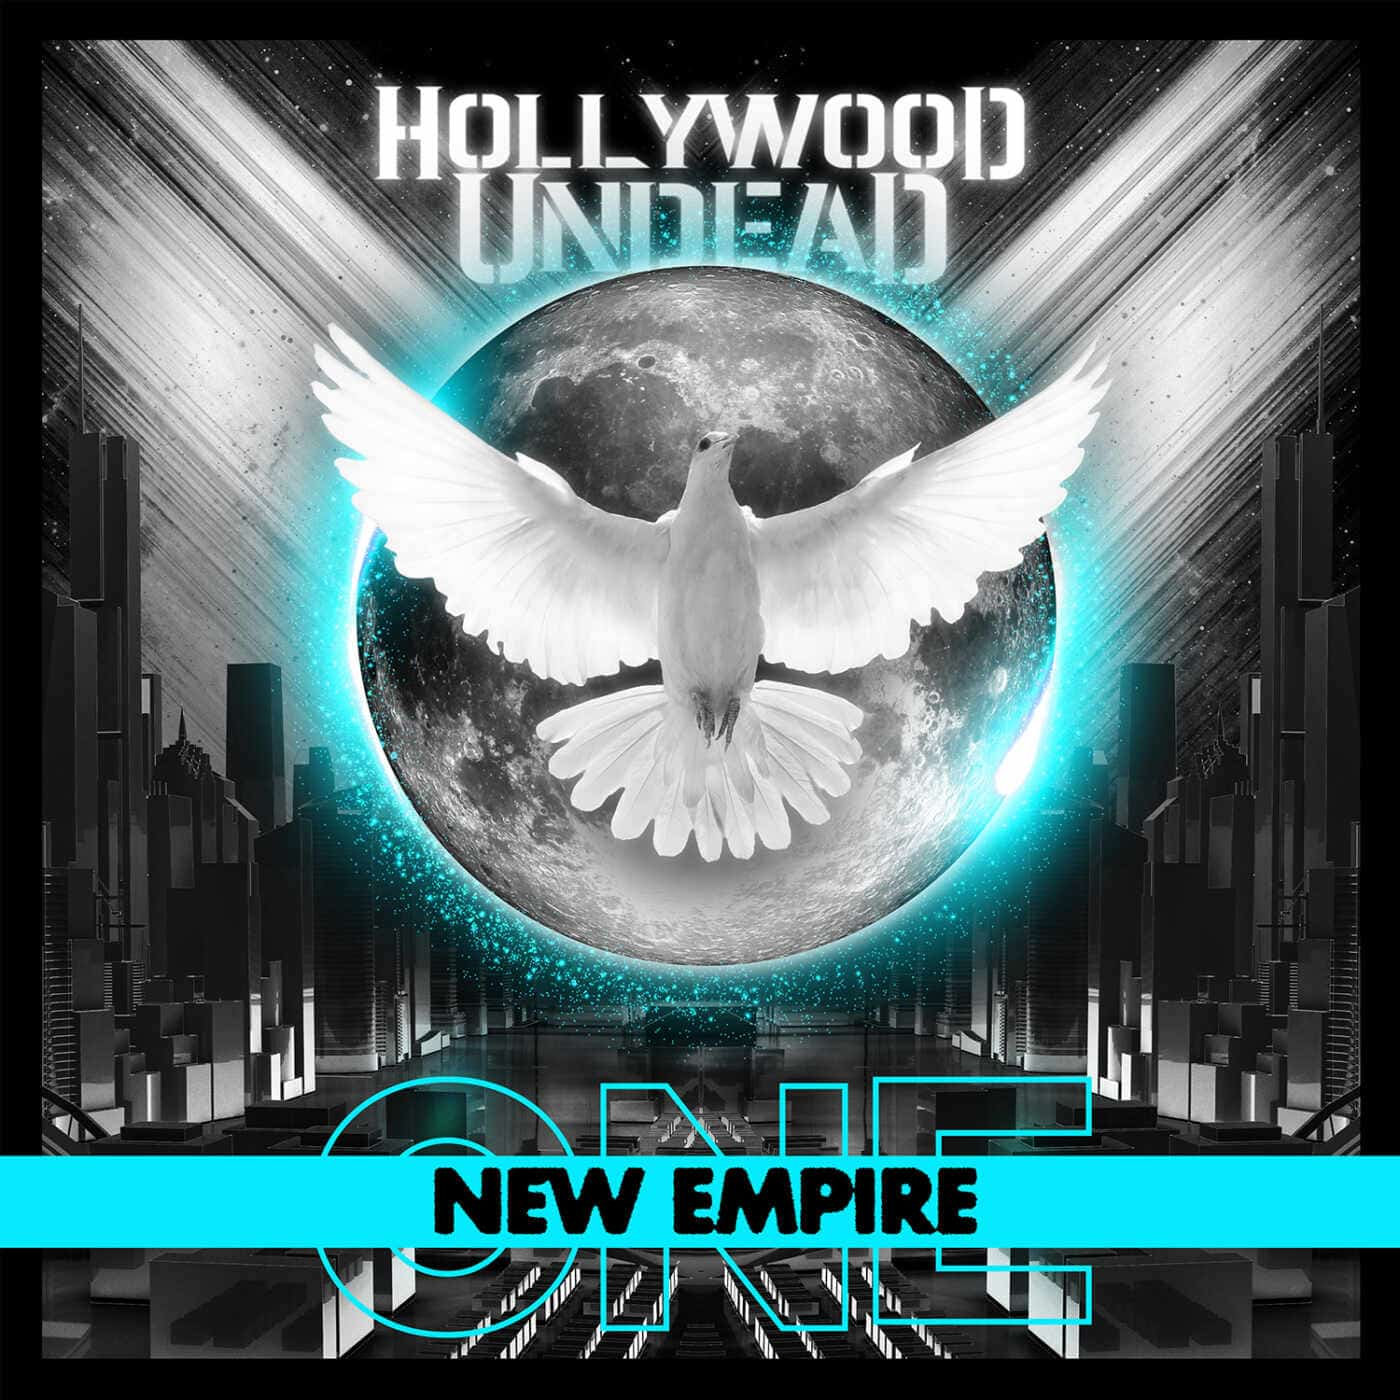 Hollywood undead cover